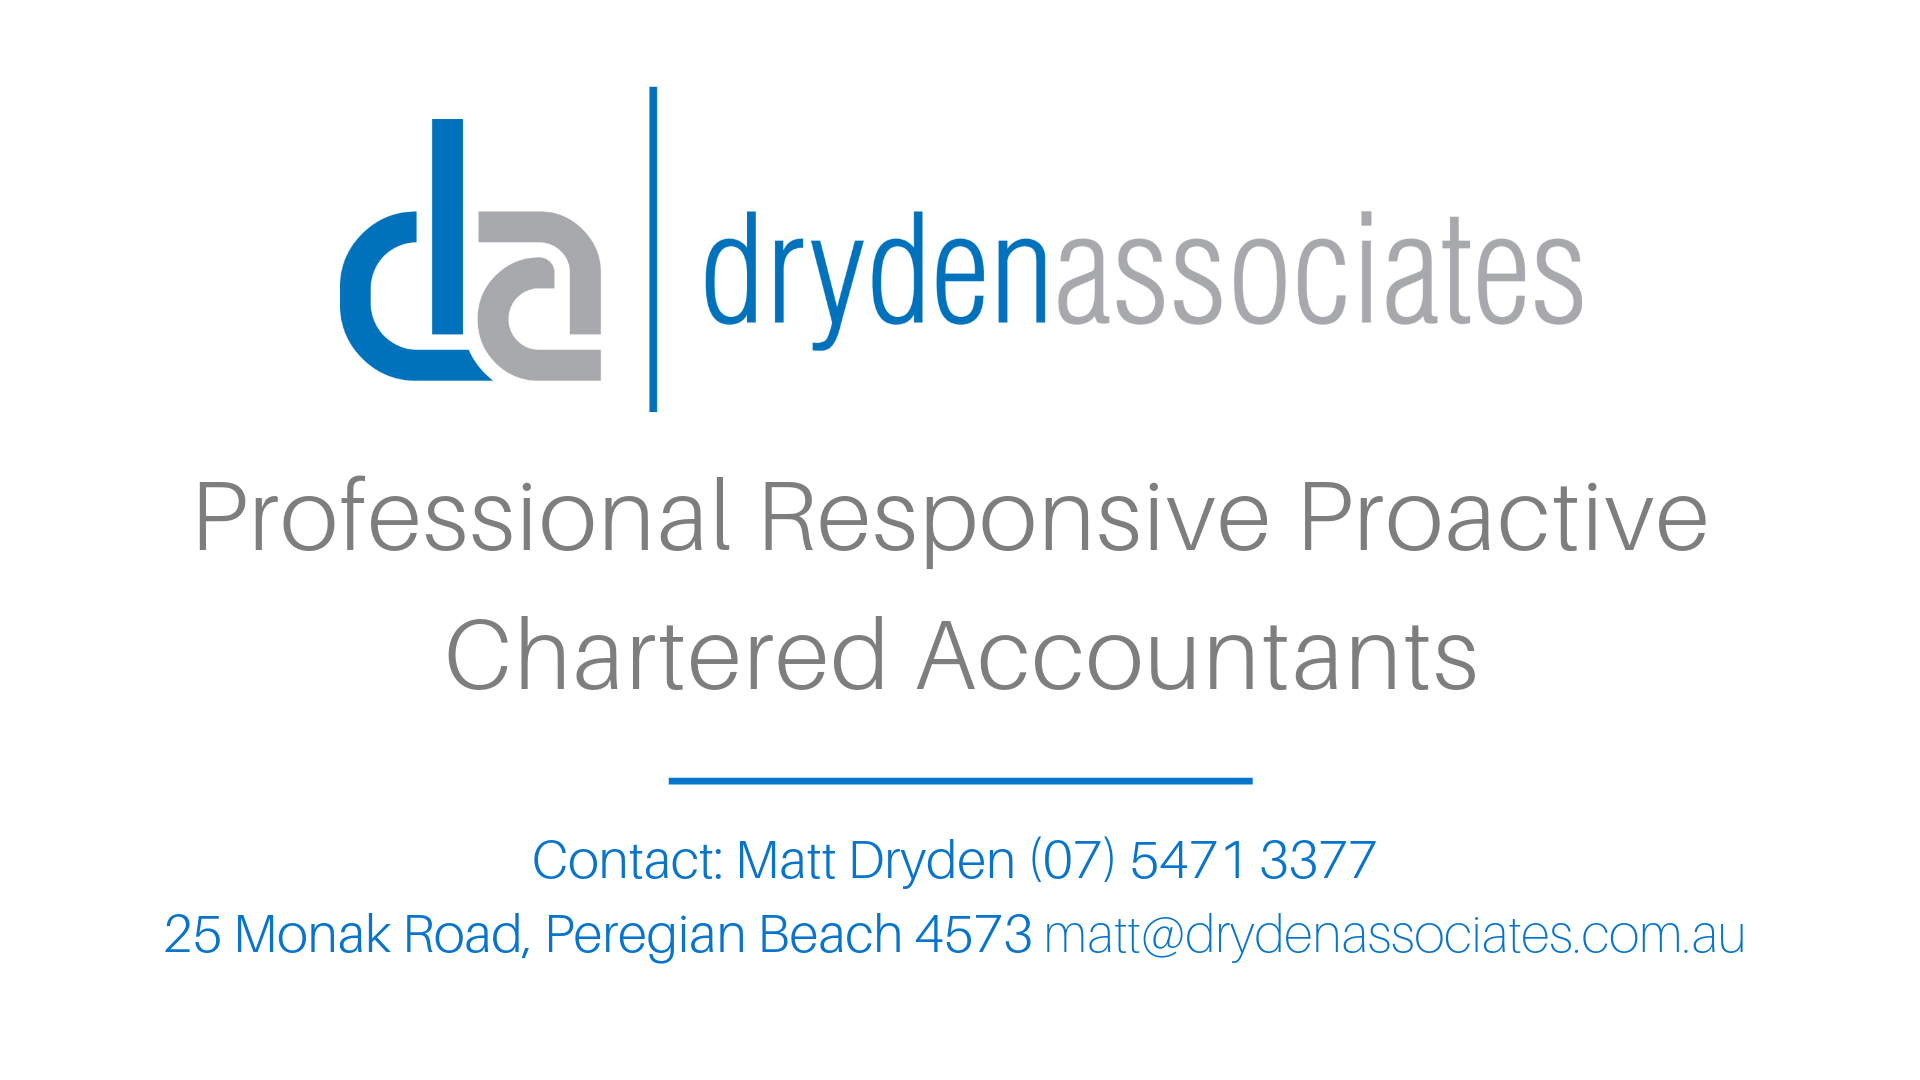 Copy of Dryden Associates Front Sponsor Board May 17